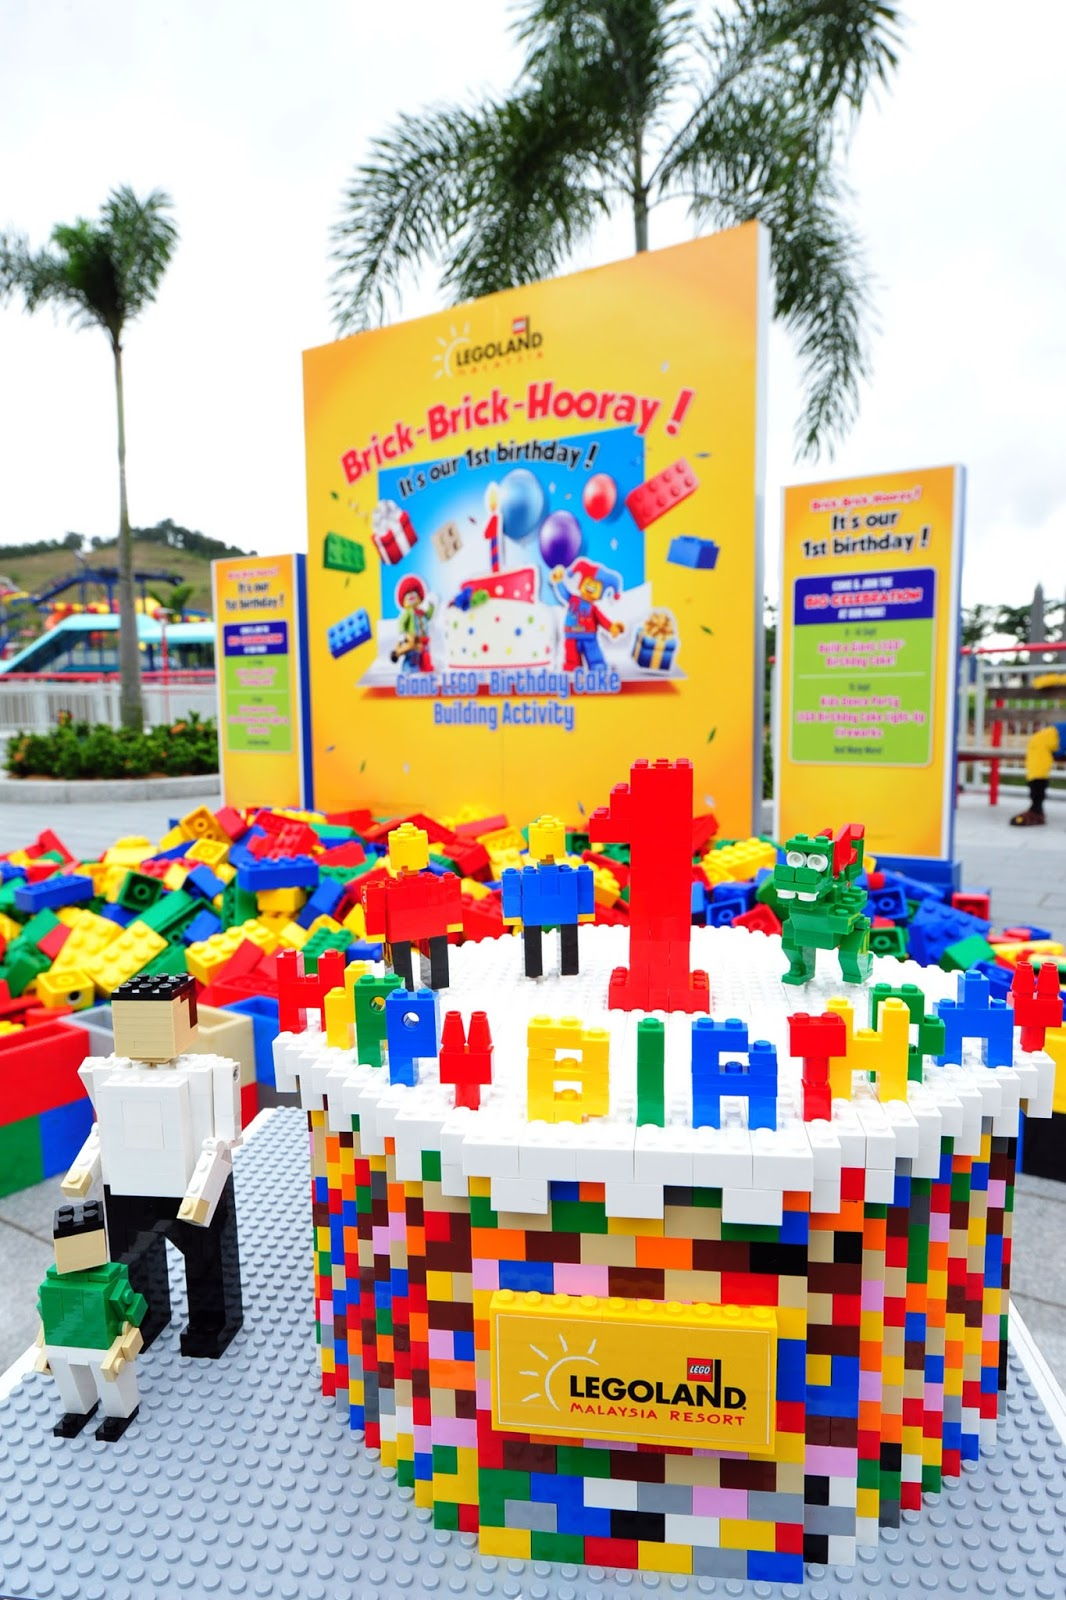 Legoland Malaysia Lines Up A Great Celebration For 1st